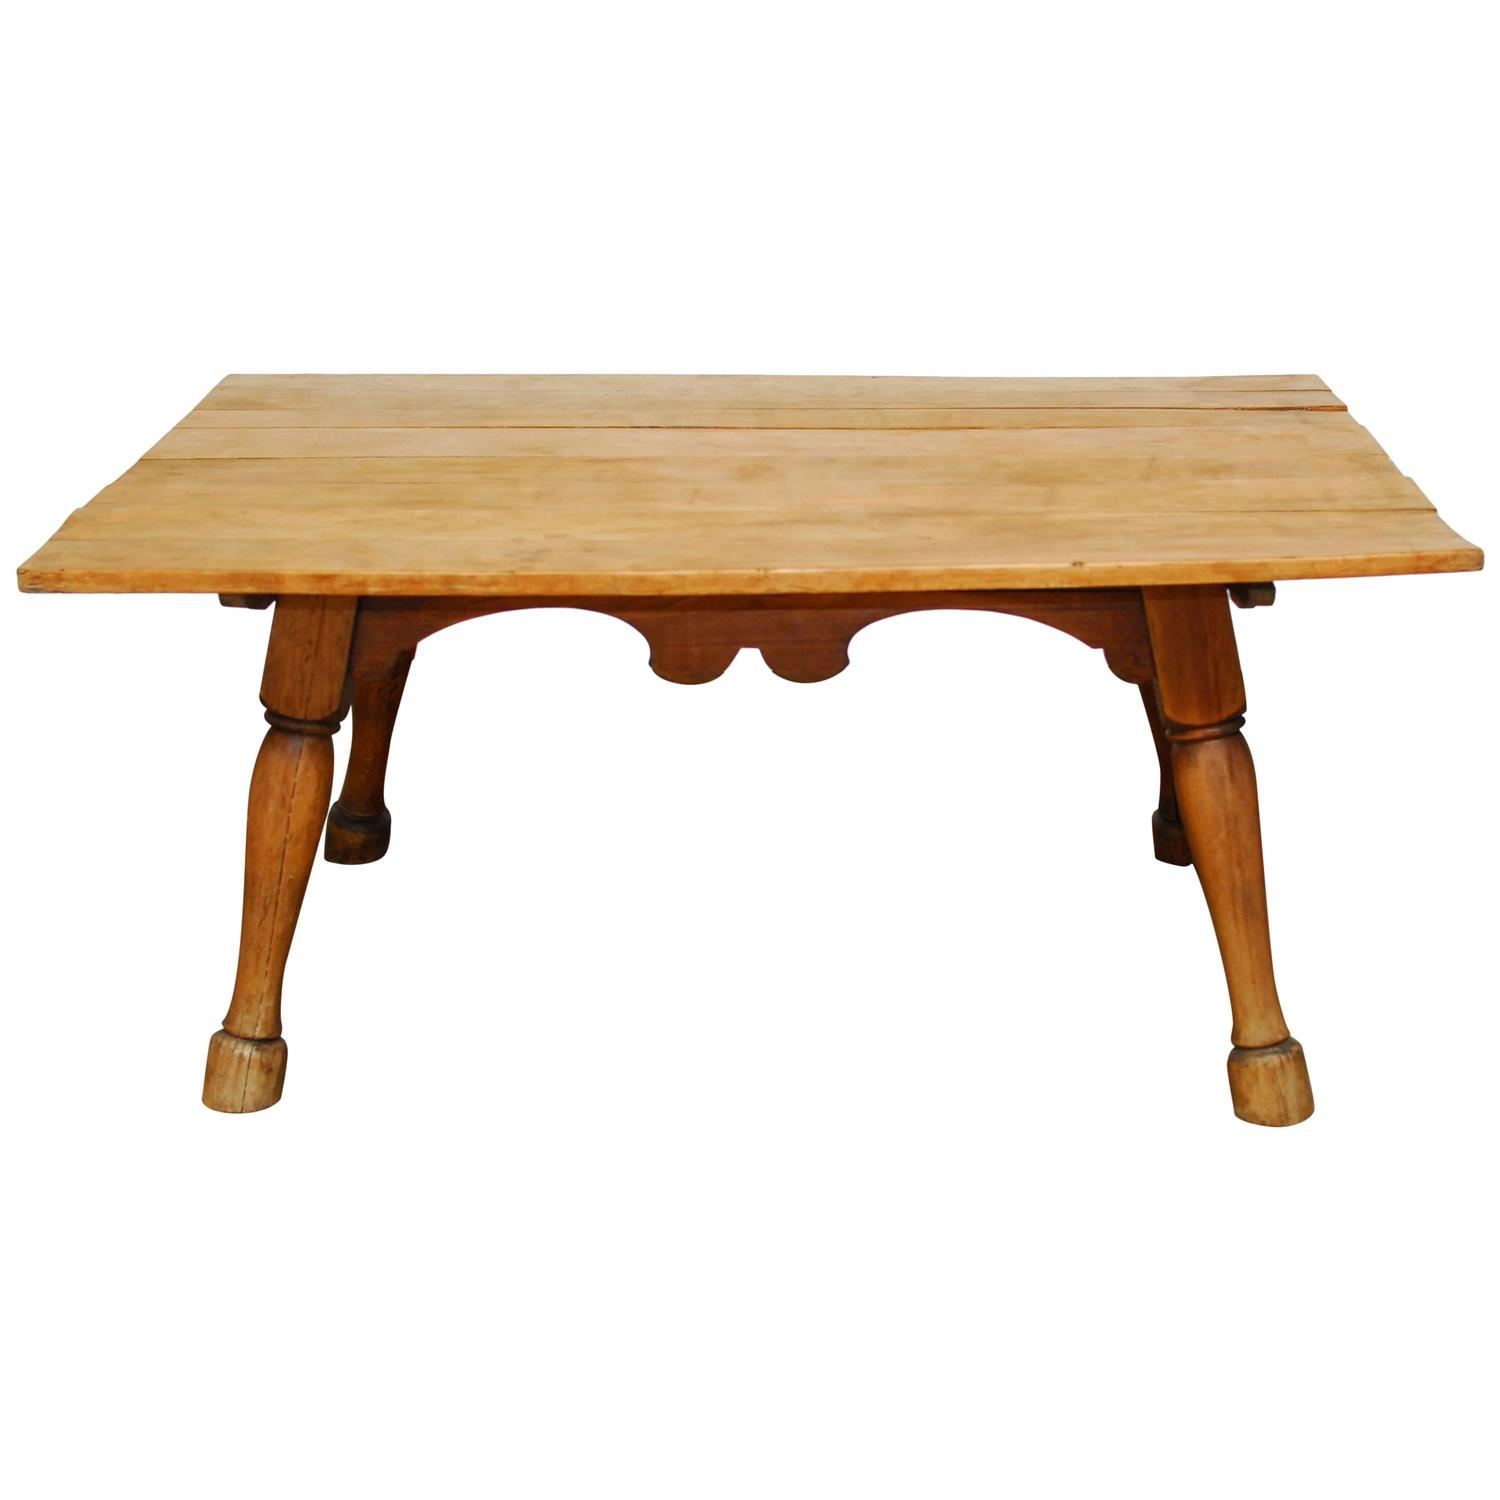 Nice 19th Century English Tavern Table With Horse Legs For Sale At 1stdibs